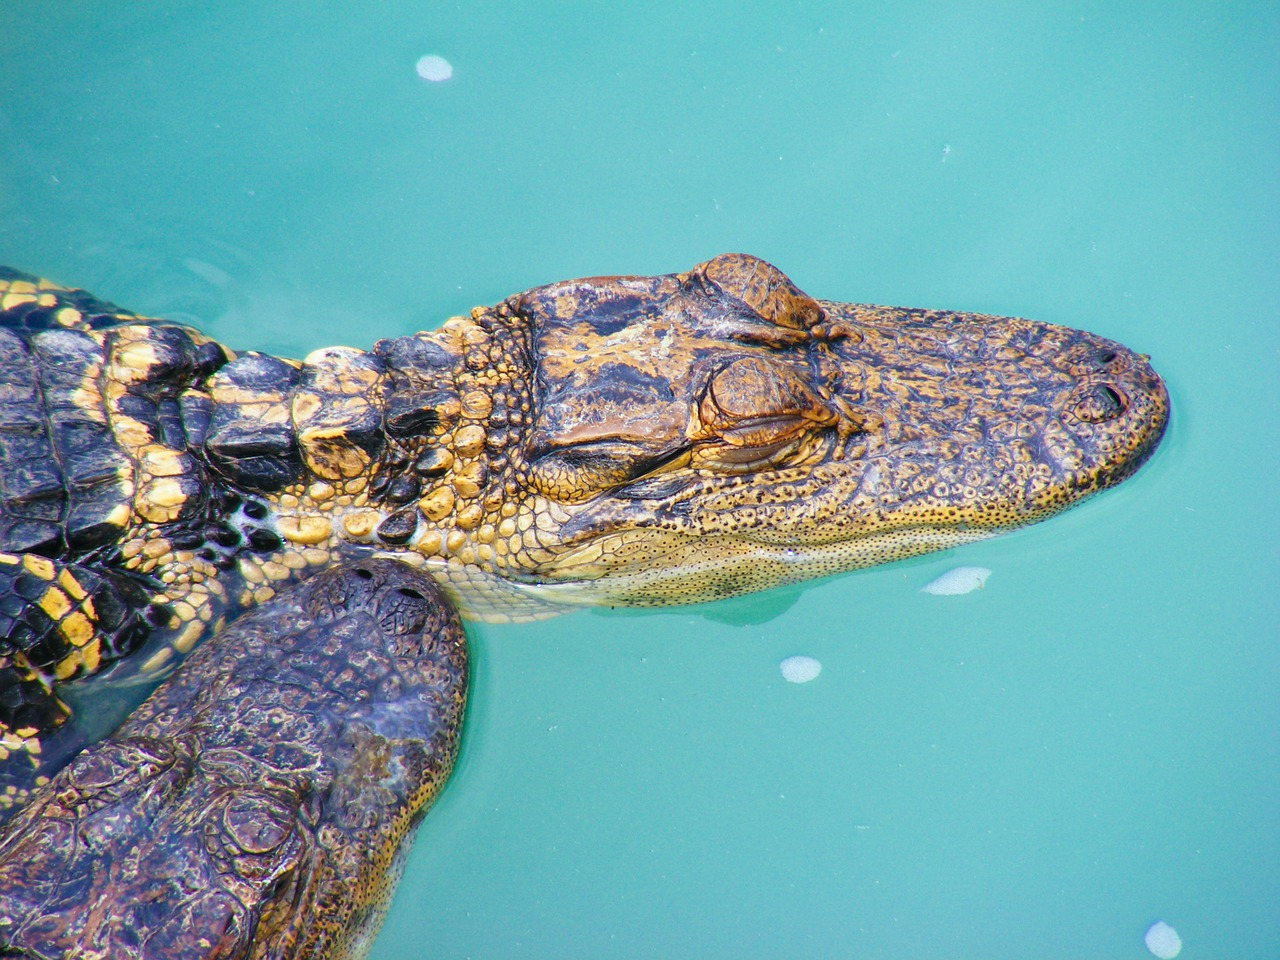 alligator reptile swamp free photo